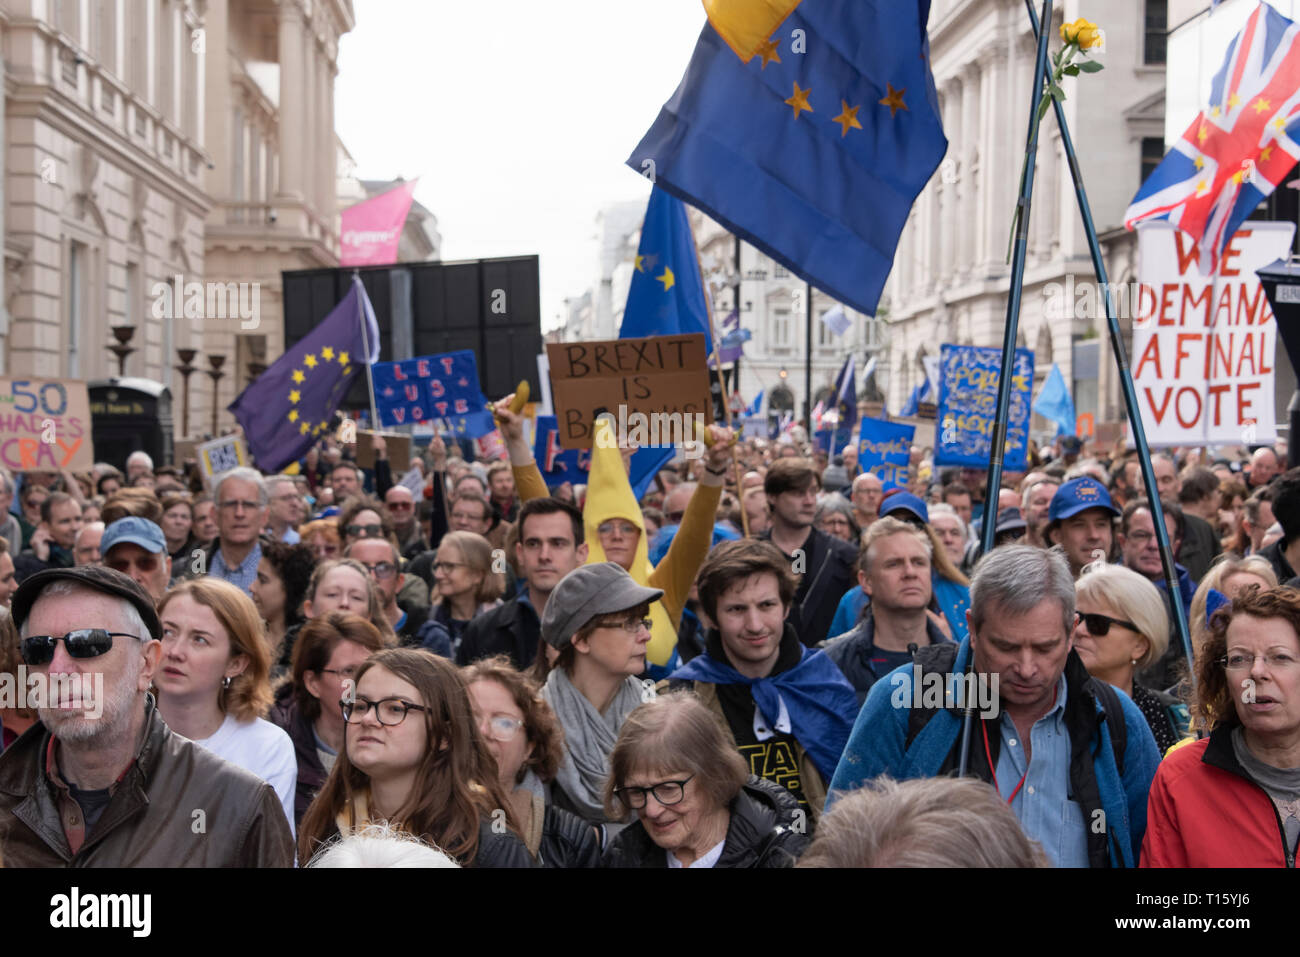 London, UK. 23rd Mar, 2019. Peoples Vote March, Crowd detail and banners as taken from the perspective of a protester. Remain banners, second referendum. Credit: Tony Pincham/Alamy Live News - Stock Image